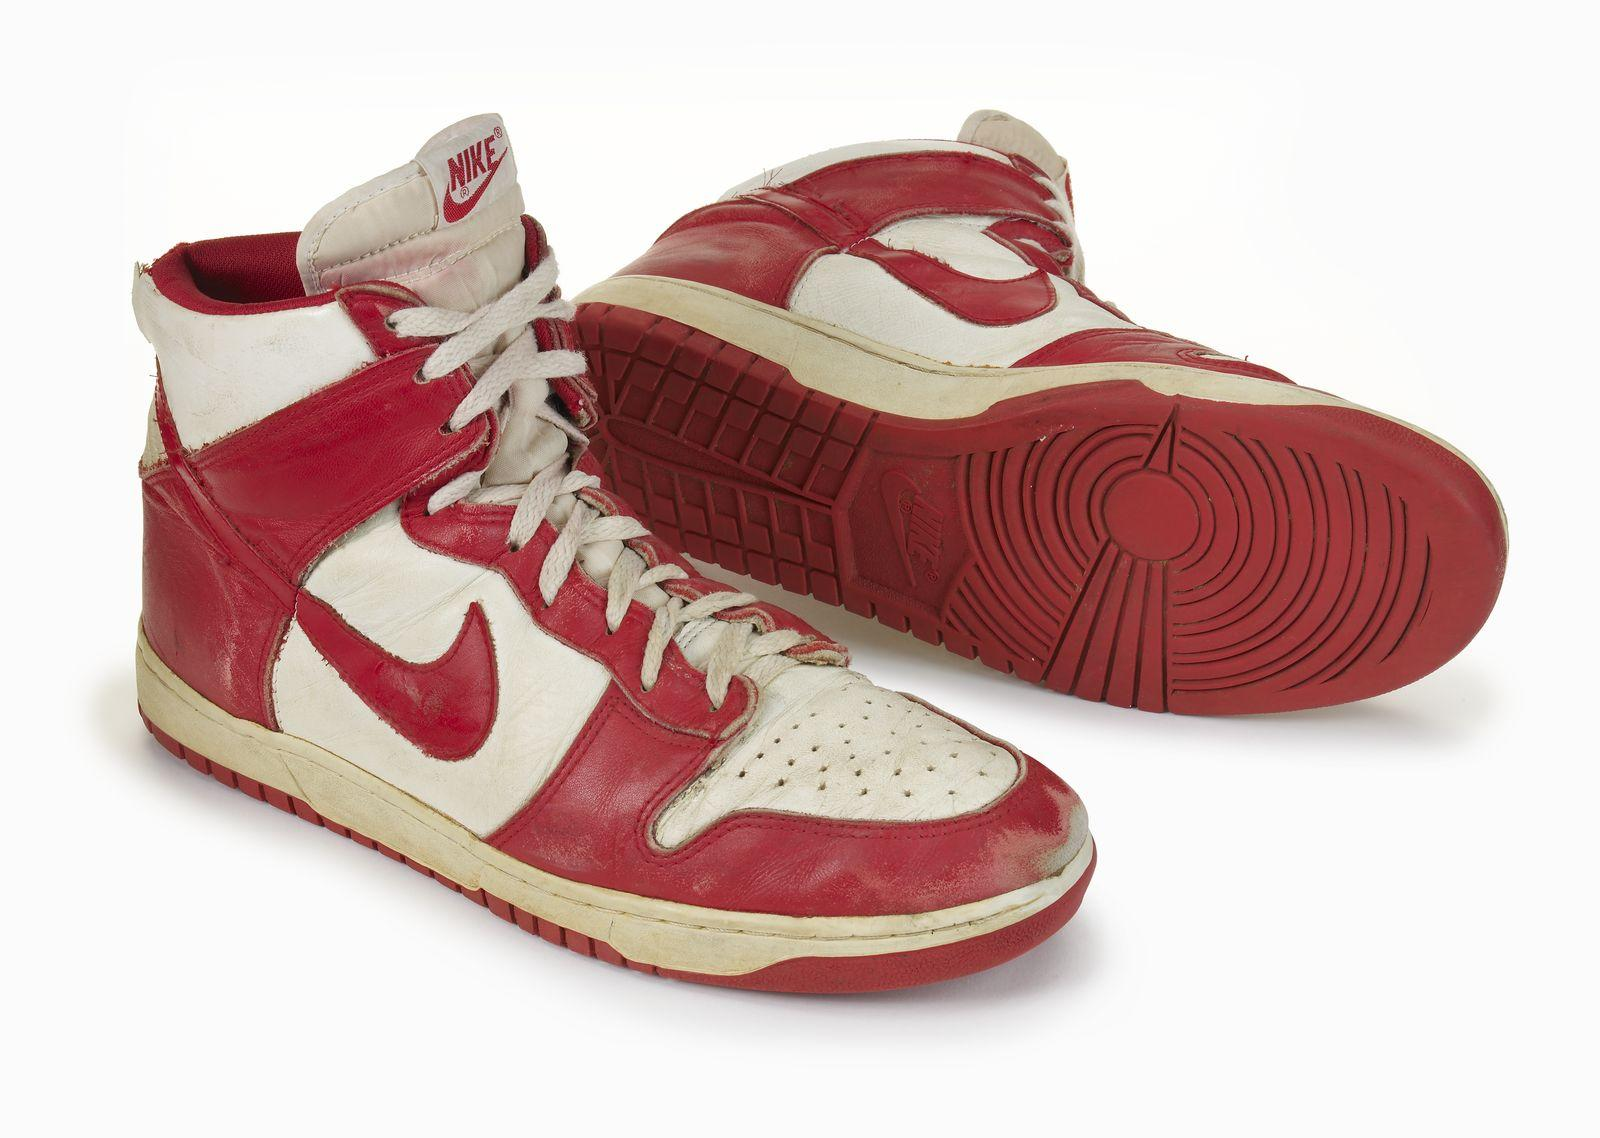 Inside Access  The Nike Dunk Celebrates 30 Years as an Icon - Nike News 031fddecd1